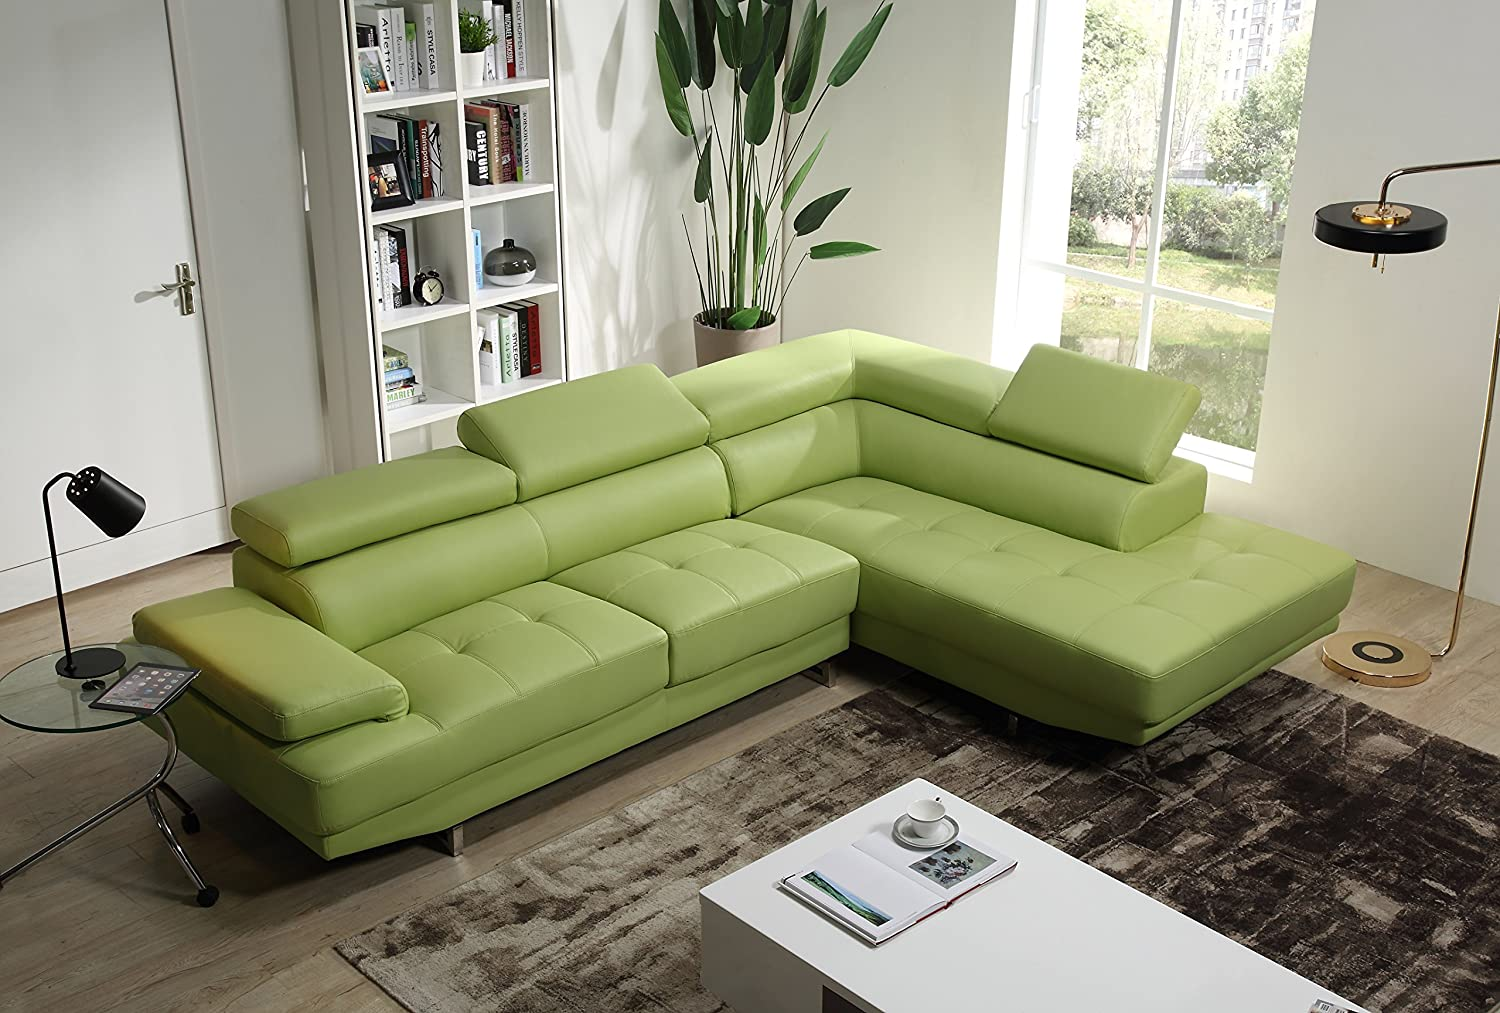 Amazon.com: Mia Leather Sectional (Apple Green): Kitchen & Dining